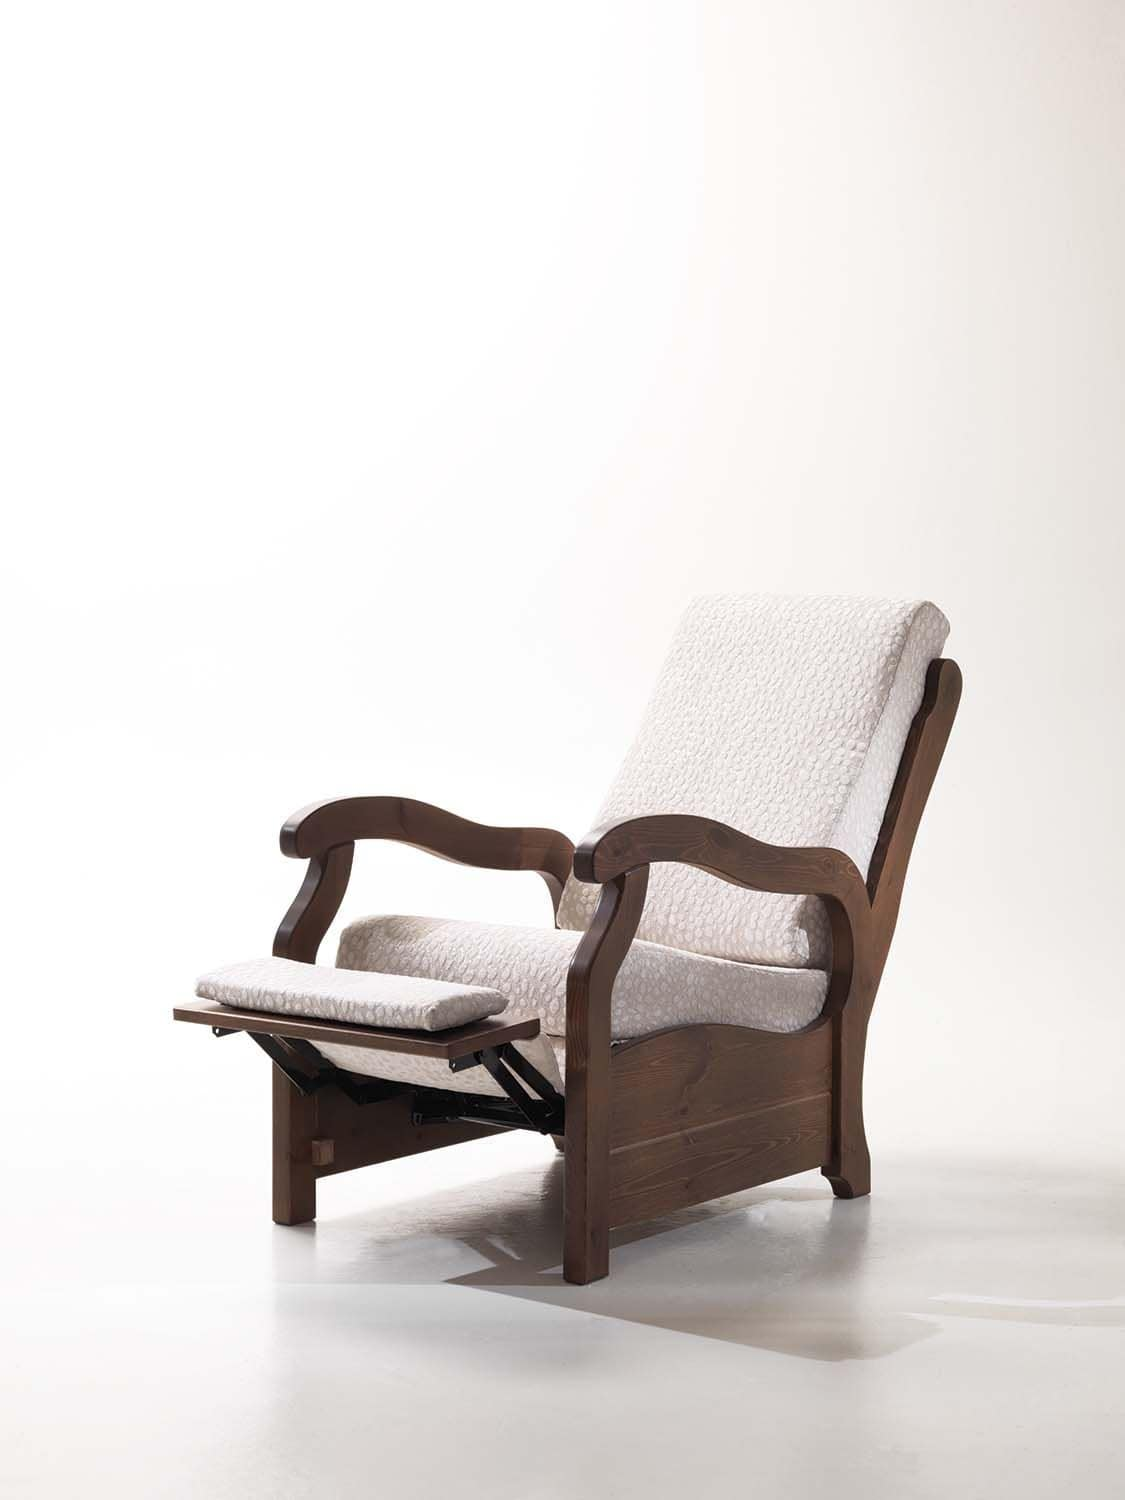 Goya, Relax chair for home, small size, rustic style